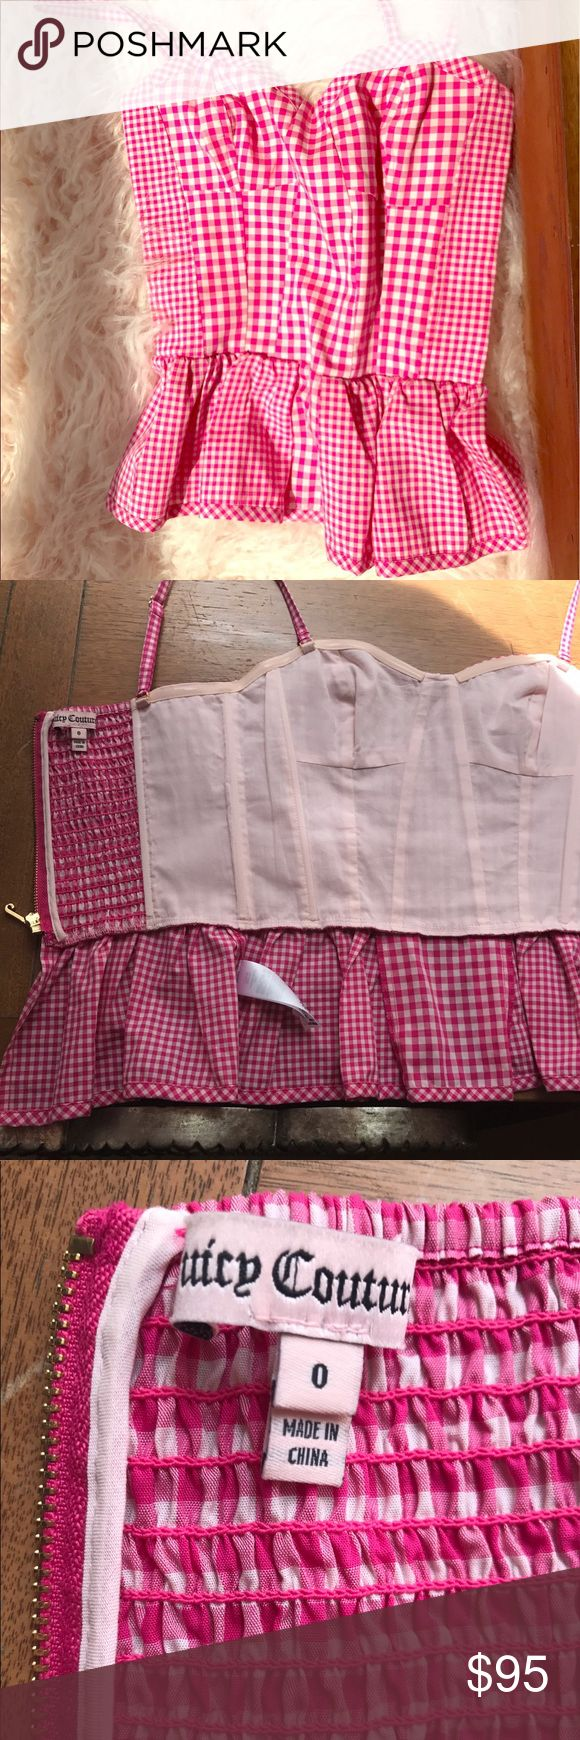 Juicy Couture Pink Gingham Peplum Bustier Unworn, retro-inspired bustier top with charming silhouette and vibrant pink mixed gingham print. Convertible straps, sweetheart neckline and exposed gold full opening back zip. Smocked back and flexible boning bodice structure. Vented back hem and partial lining. Plain weave fabric (Shell: 96% cotton/4% elastane. Lining: 100% cotton) Juicy Couture Tops Crop Tops